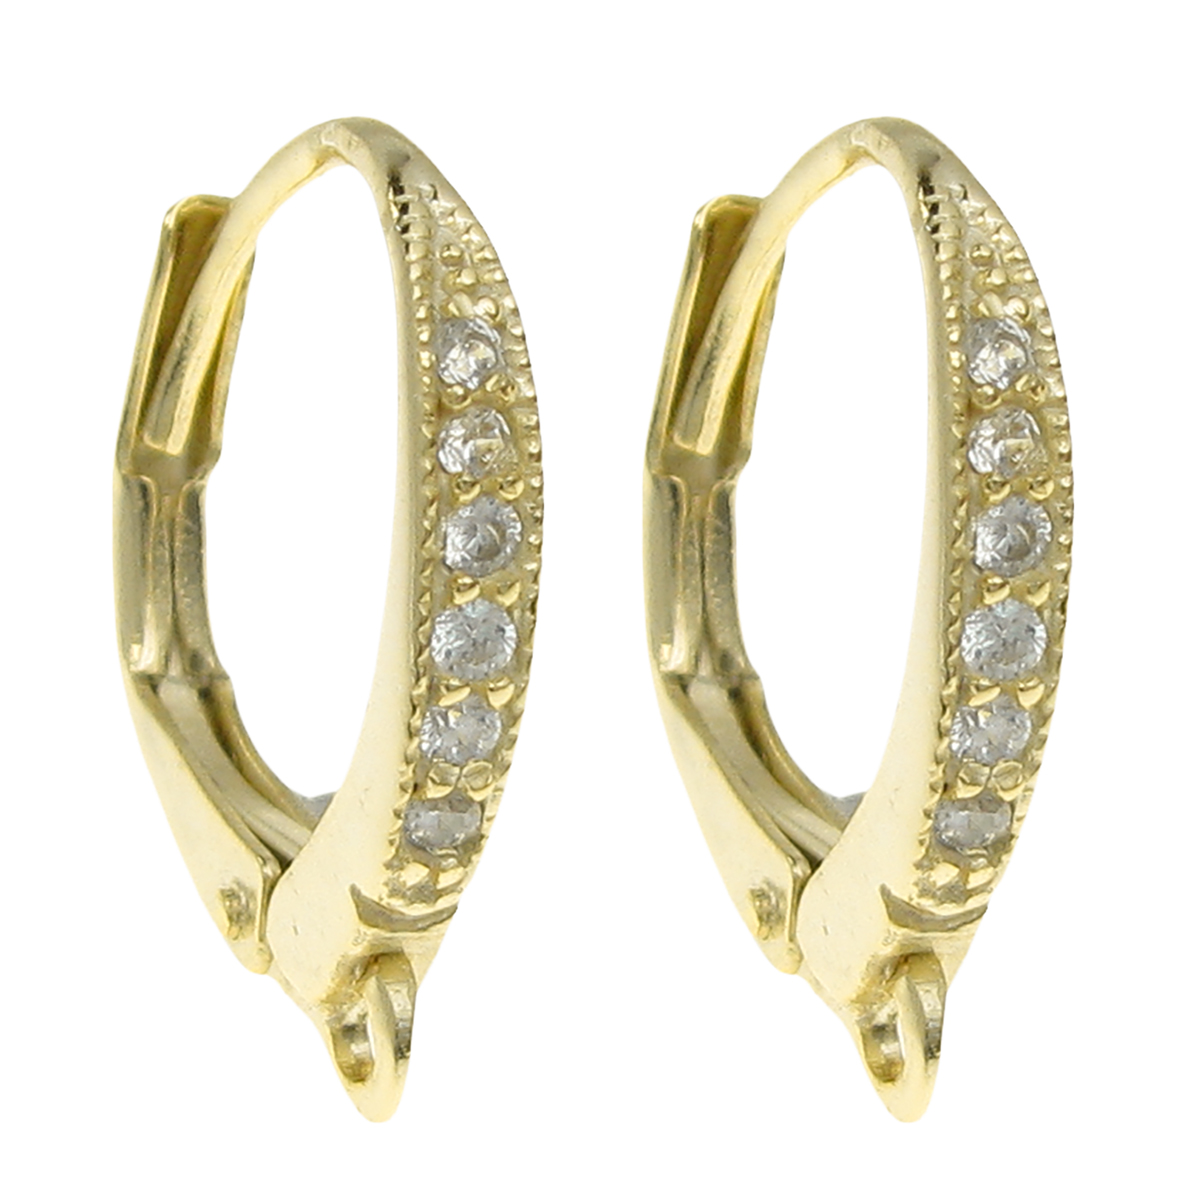 2x Vermeil 14k Gold Plated SILVER LEVERBACK CZ Crystal lever back Ear wire